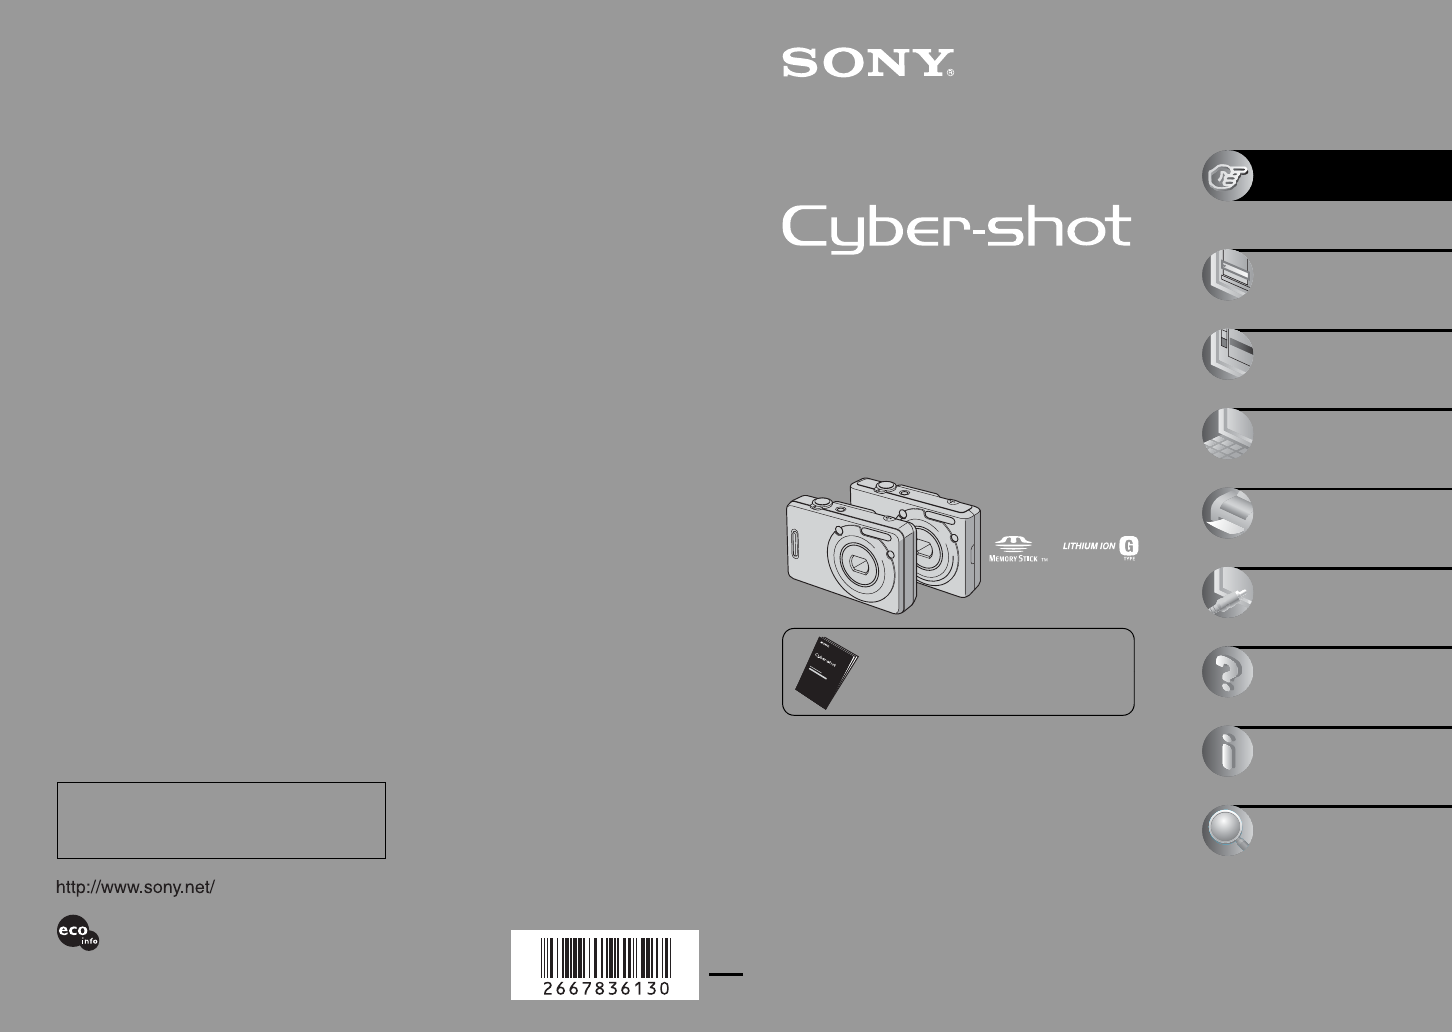 user guide for dsx-wx500 sony digital camera